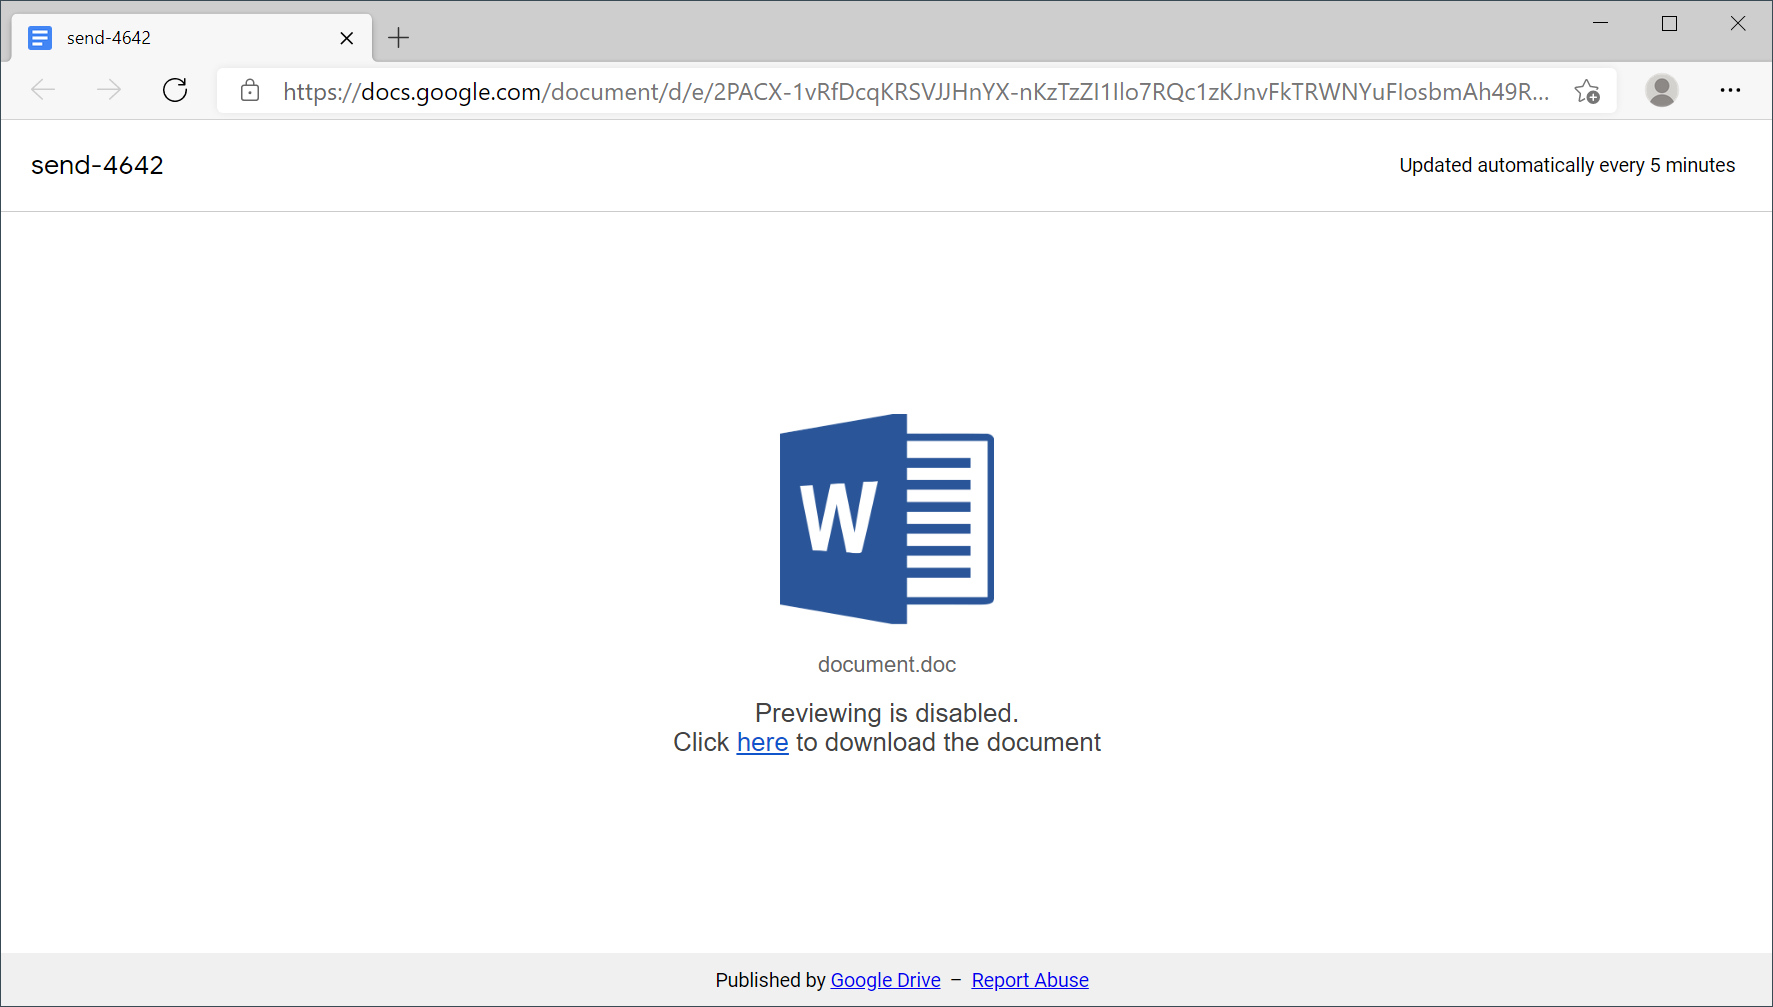 """The criminals behind Hancitor frequently abuse Google Drive URLs. In the screenshot shown, the Google Docs link leads to an image of a Word doc with the following text: """"Previewing is disabled. Click here to download the document."""""""